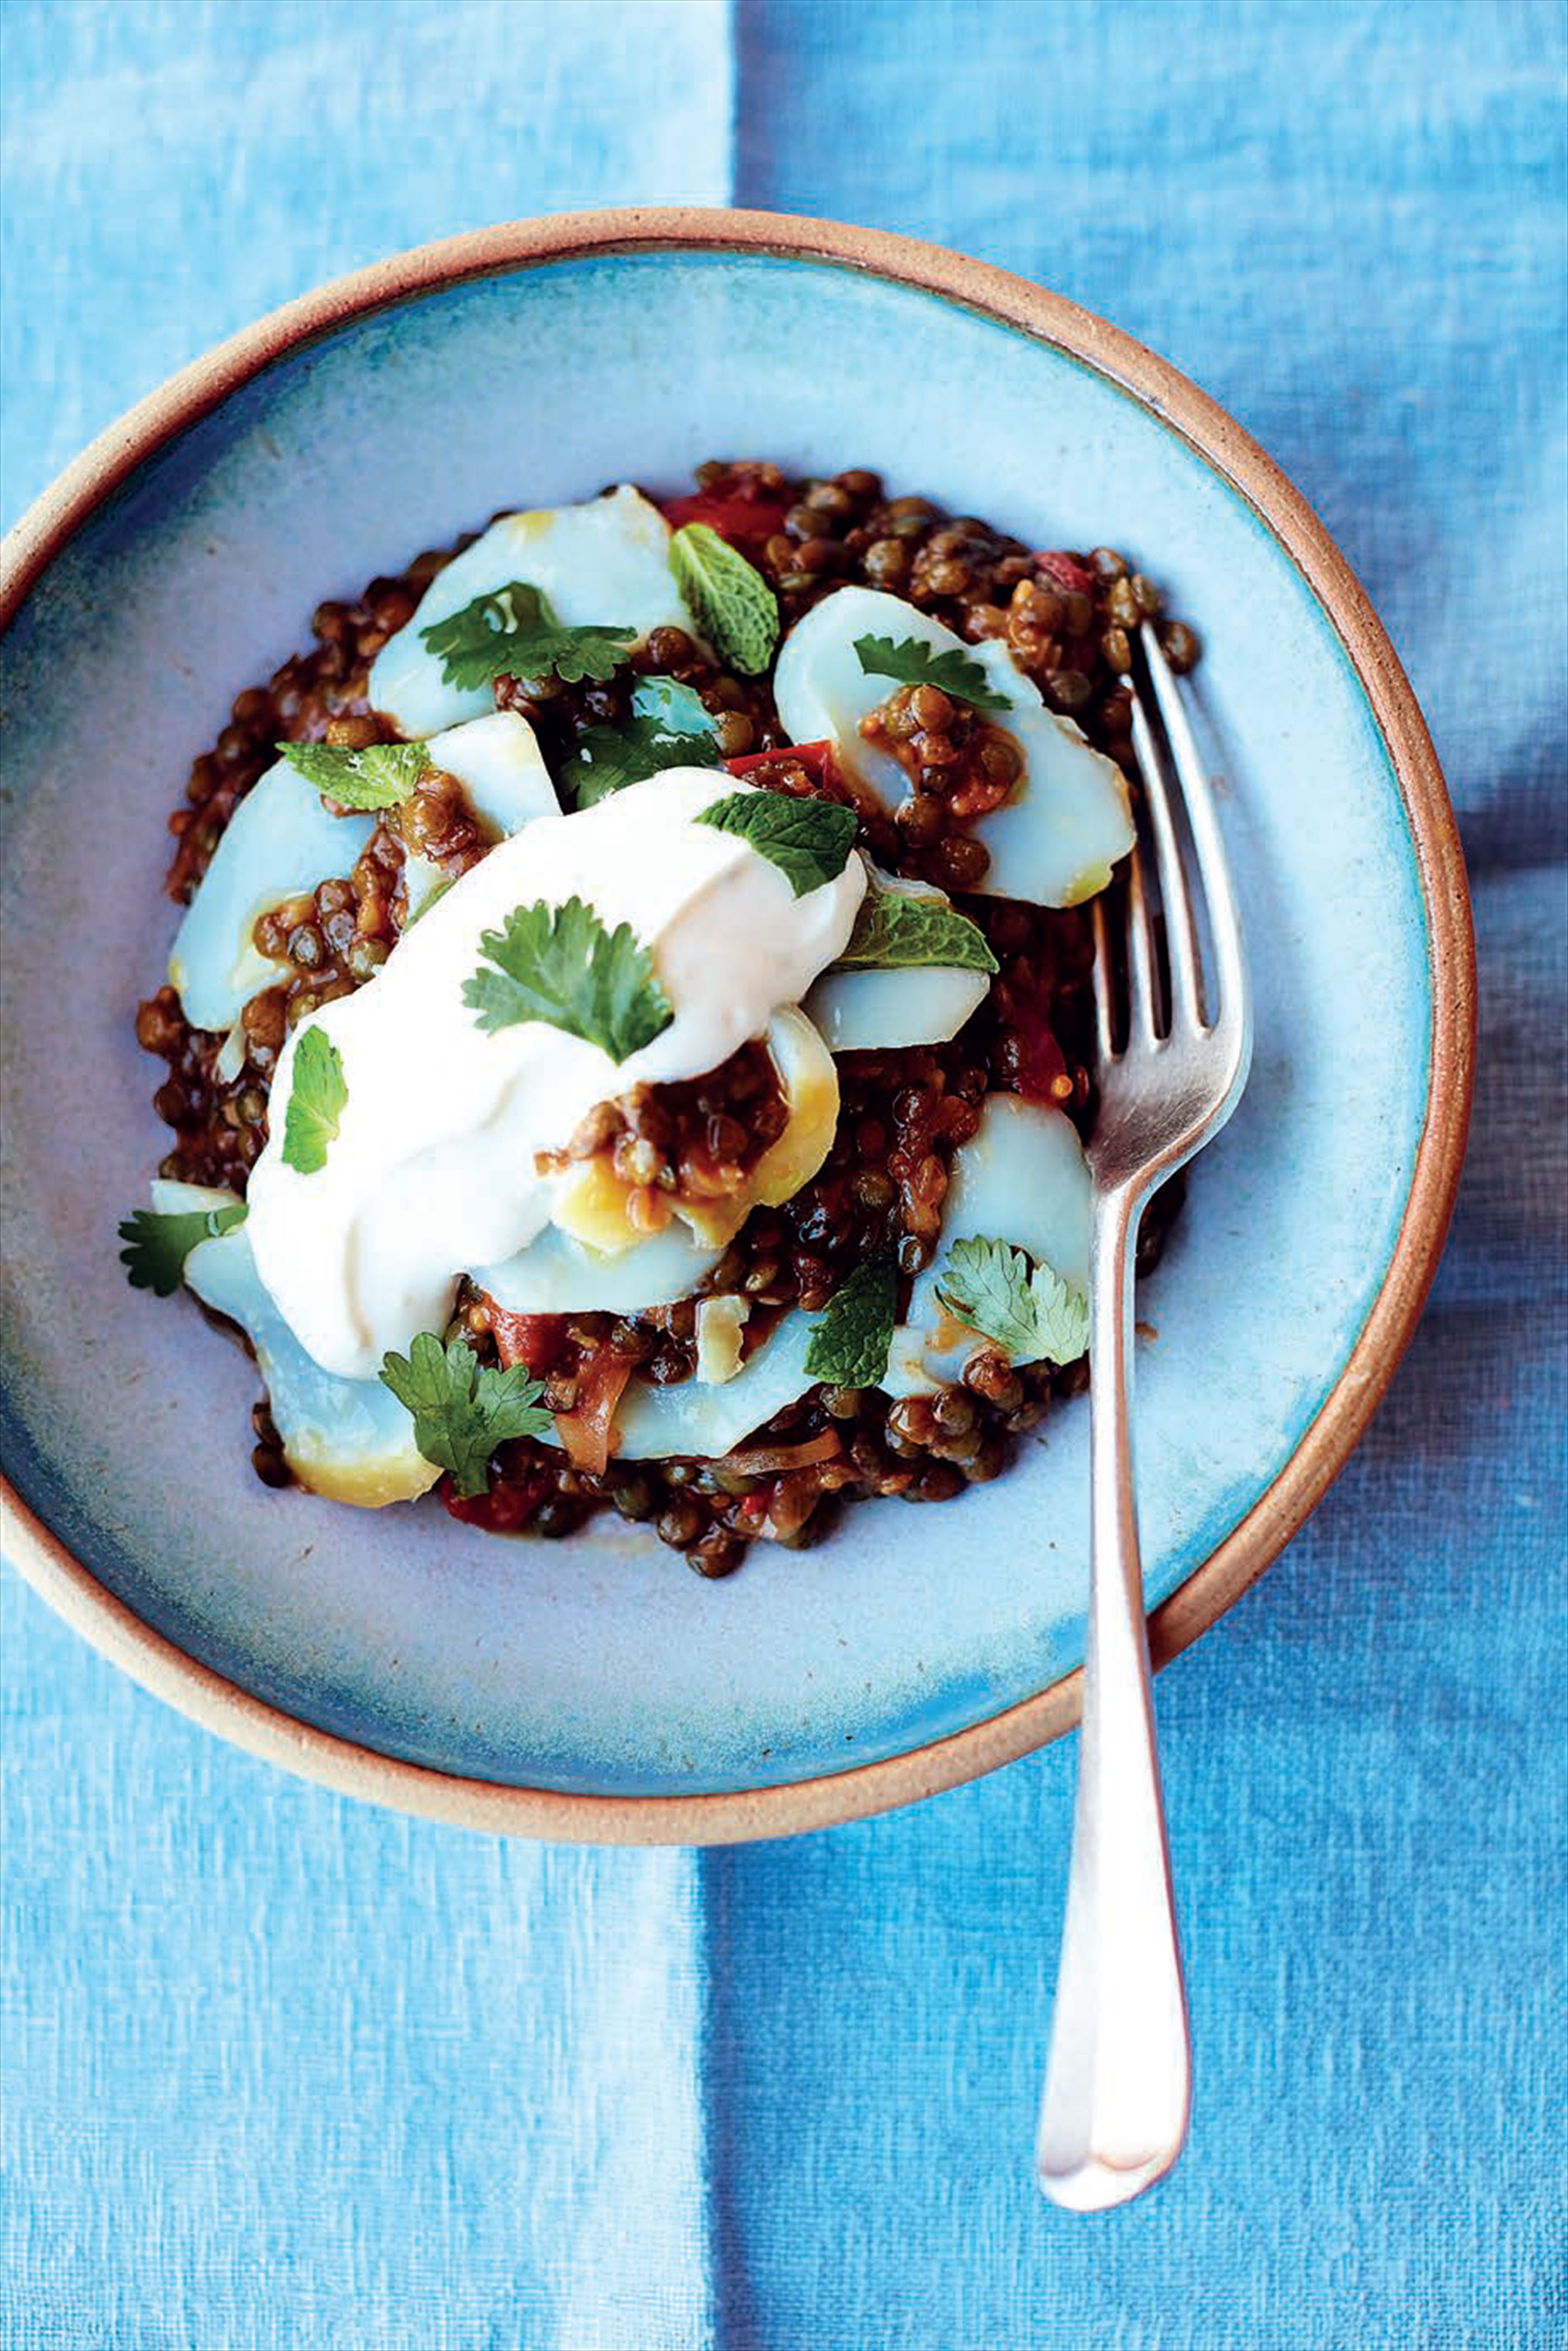 Smoked haddock and curried lentils, lime yoghurt